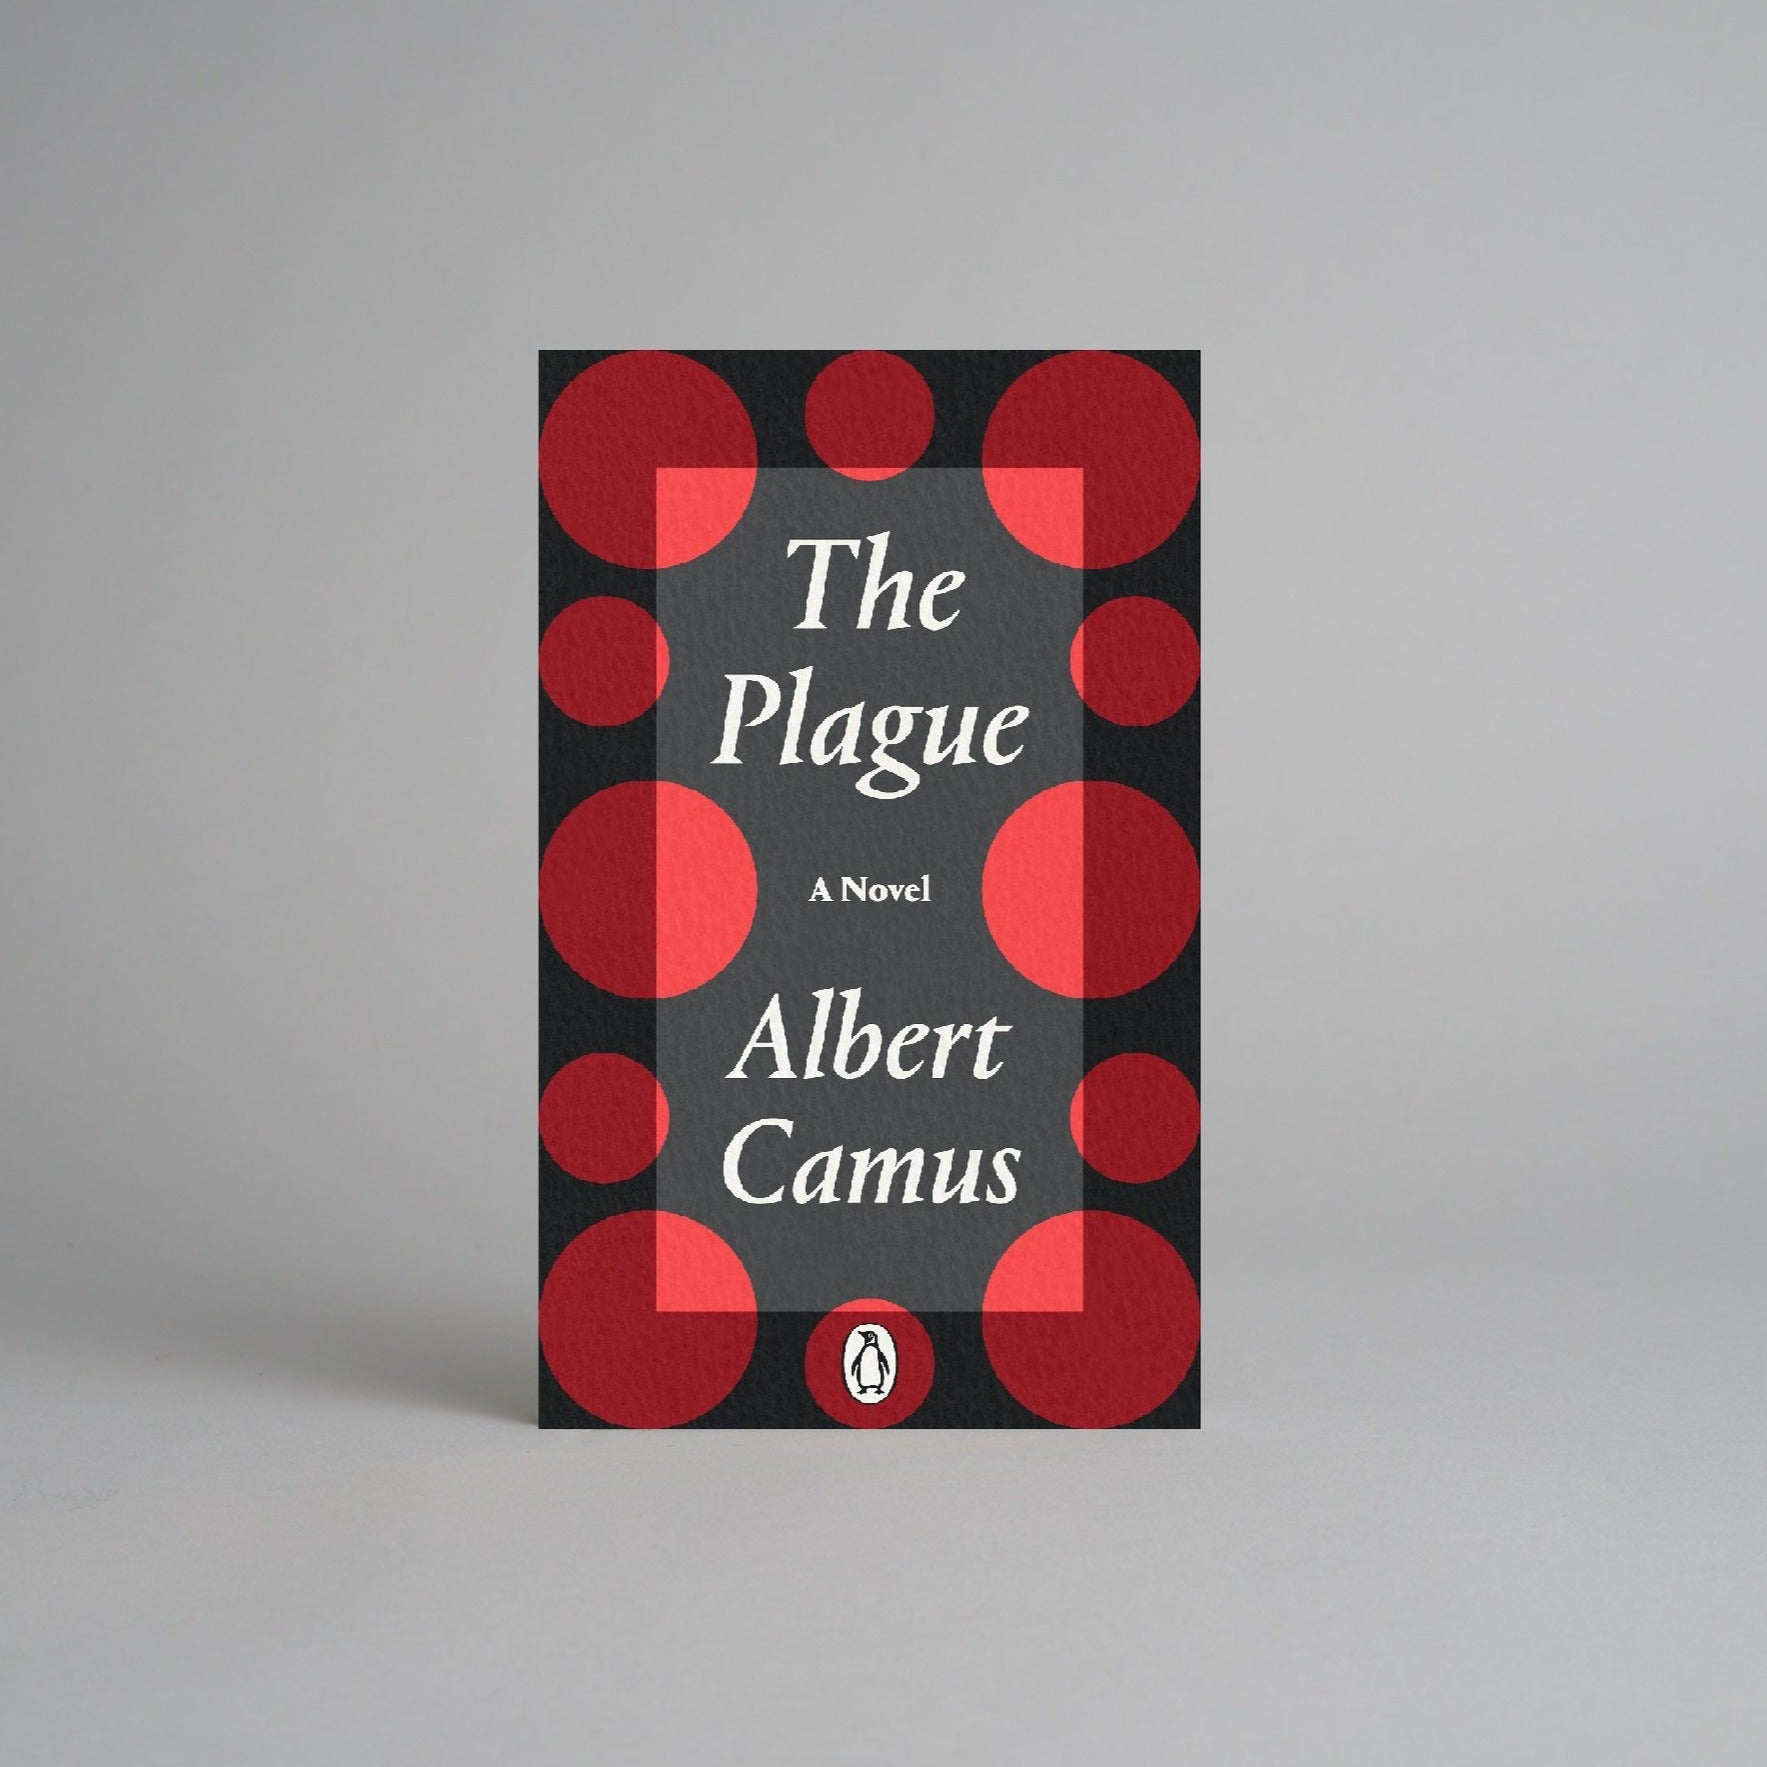 The Plague by Albert Camus